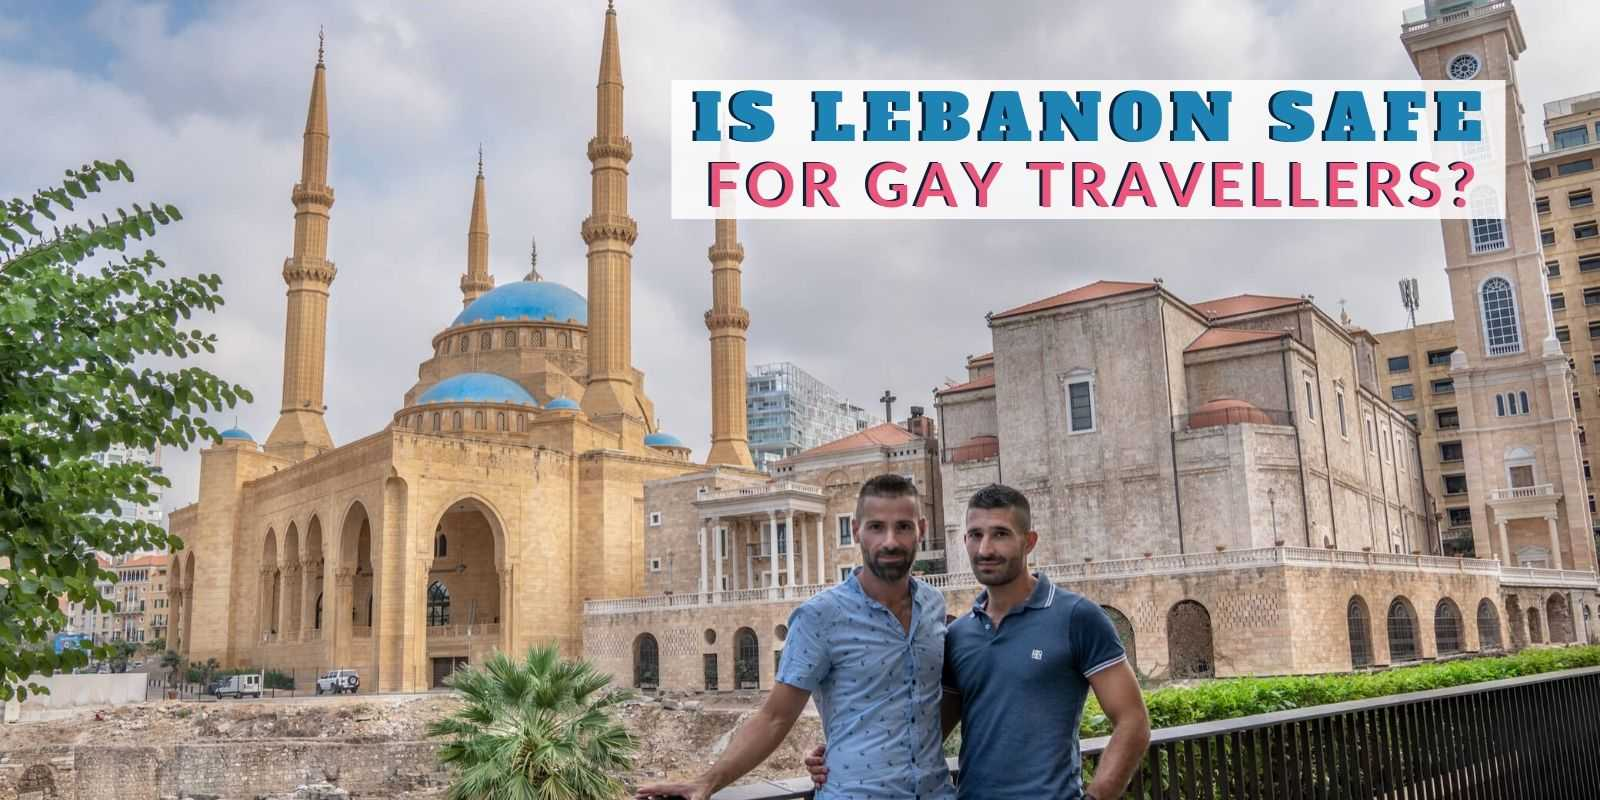 Find out all our tips so that you can safely visit Lebanon even as a gay traveller